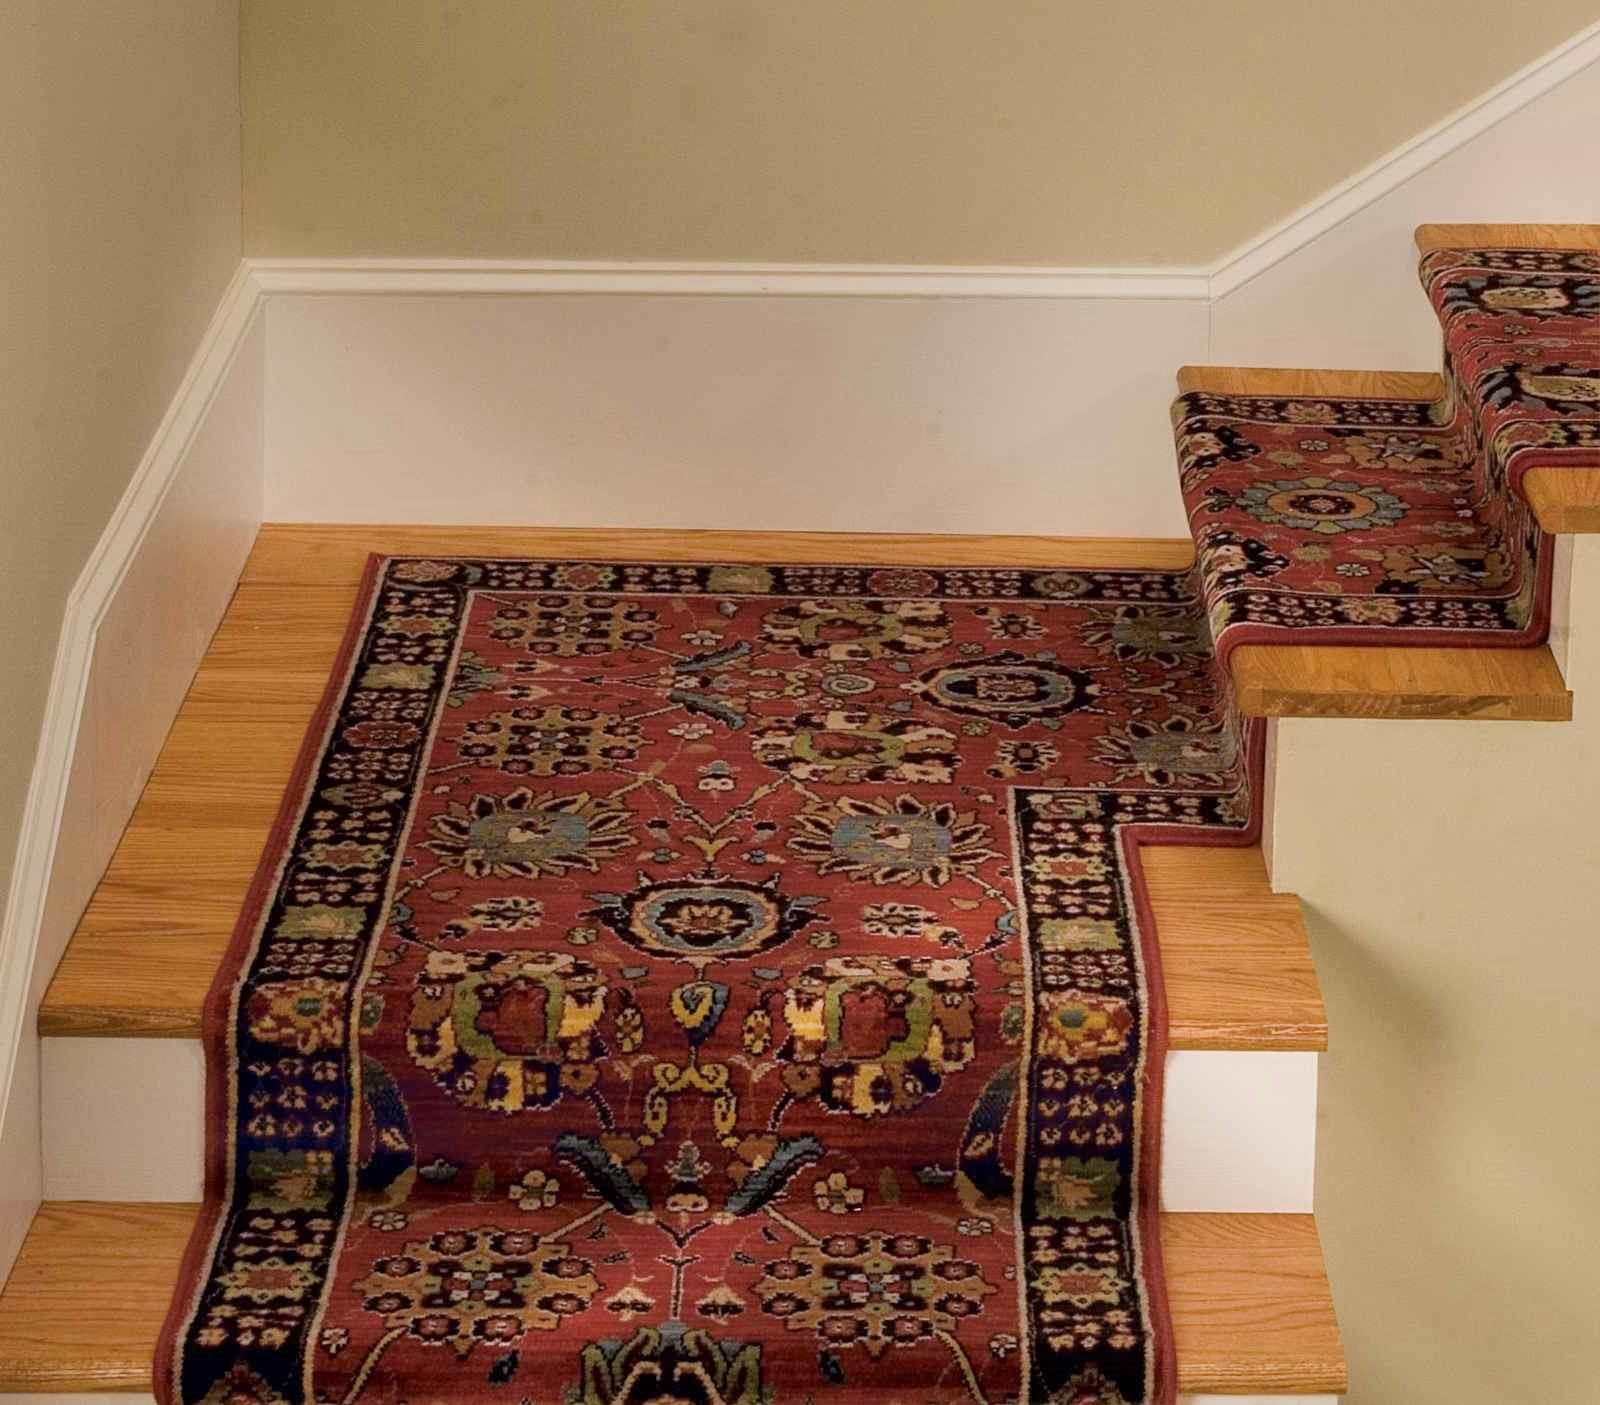 Make Your Stairs Safer With Carpet Stair Treads Carpet Stair Within Carpet Stair Treads Set Of  (Image 11 of 15)